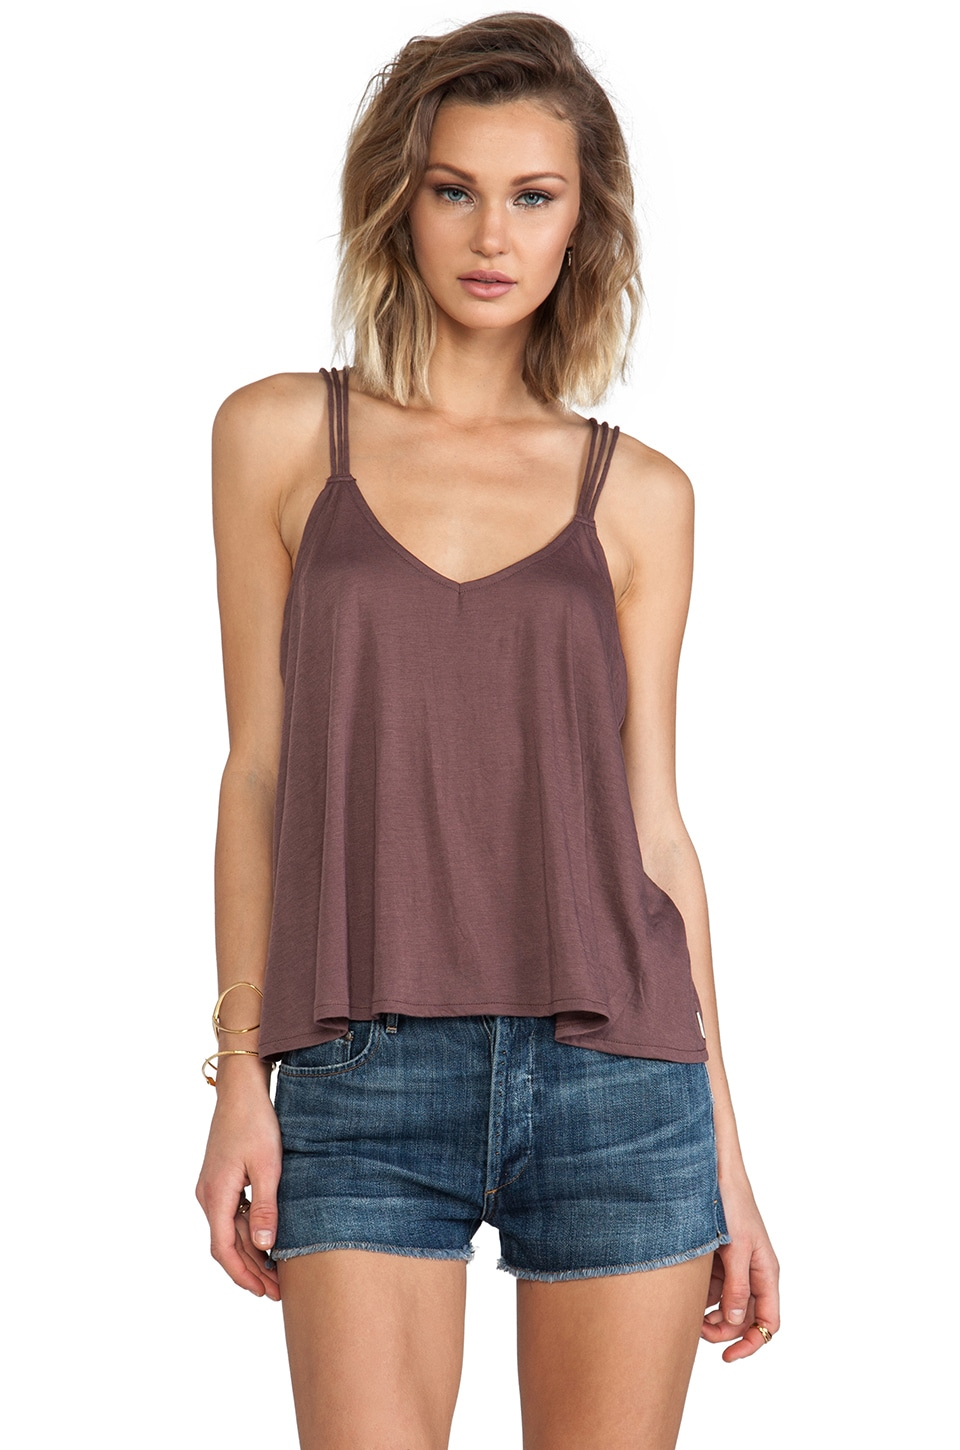 RVCA Kid Blue Tank in Muddy Plum